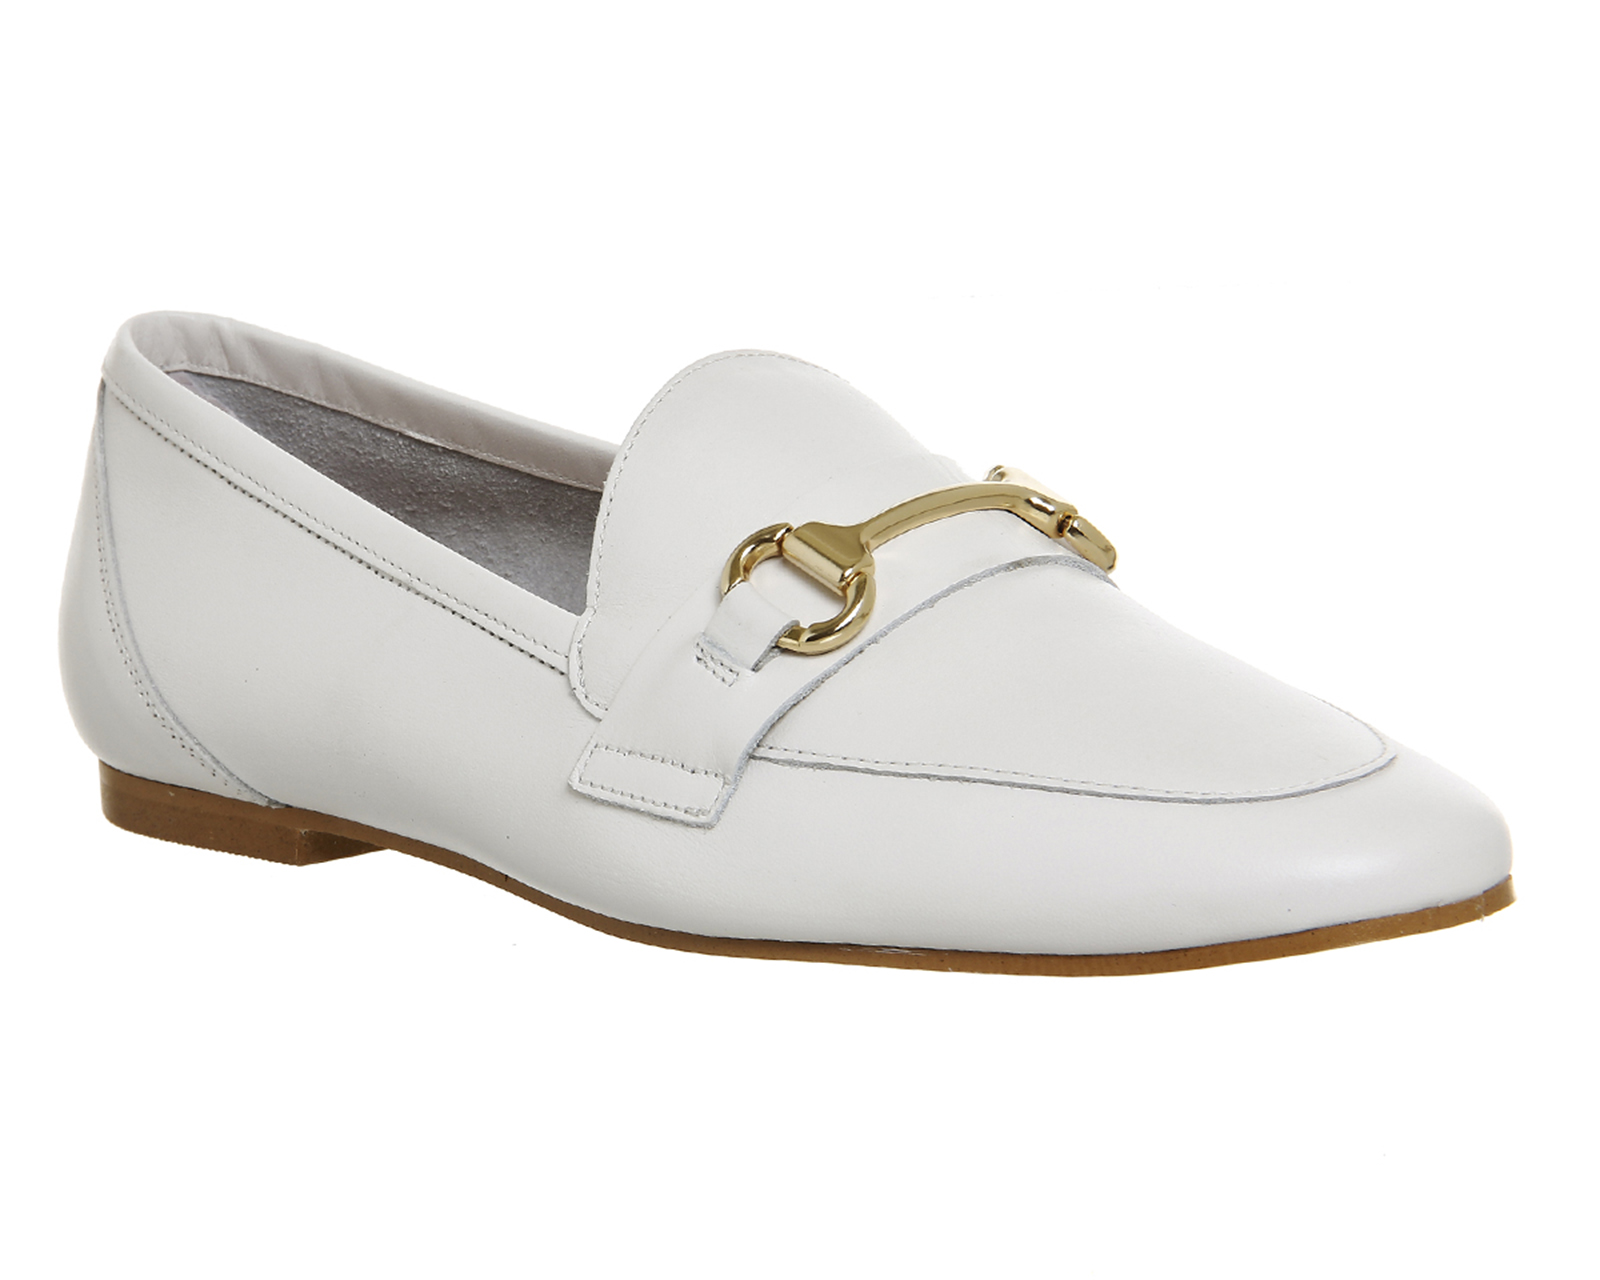 4766af77a6a Womens Office Destiny Trim Loafers OFF WHITE LEATHER Flats